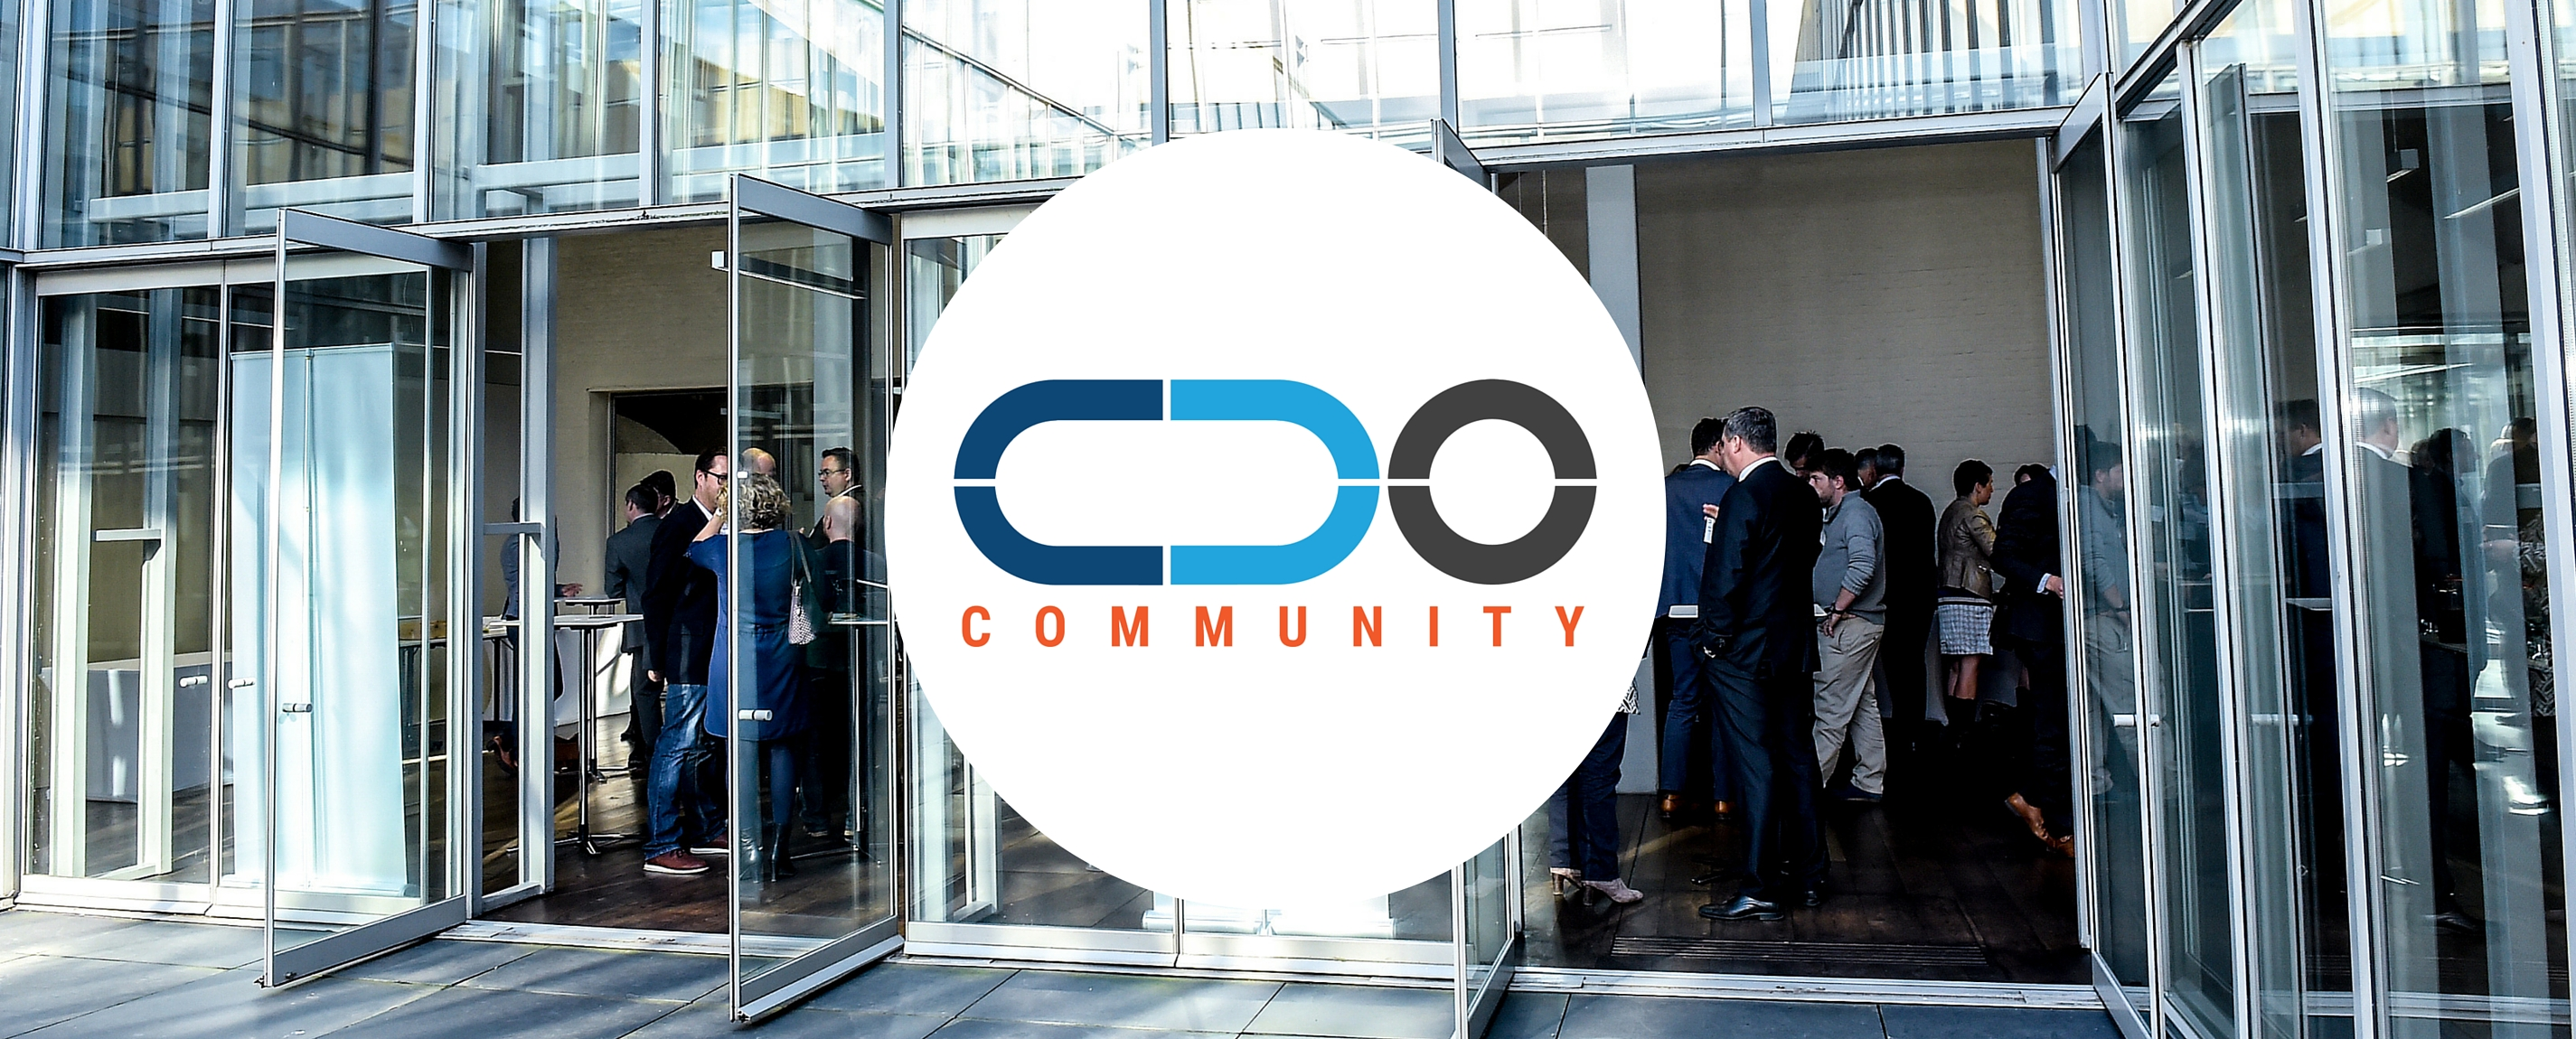 CDO Community by Duval Union Academy